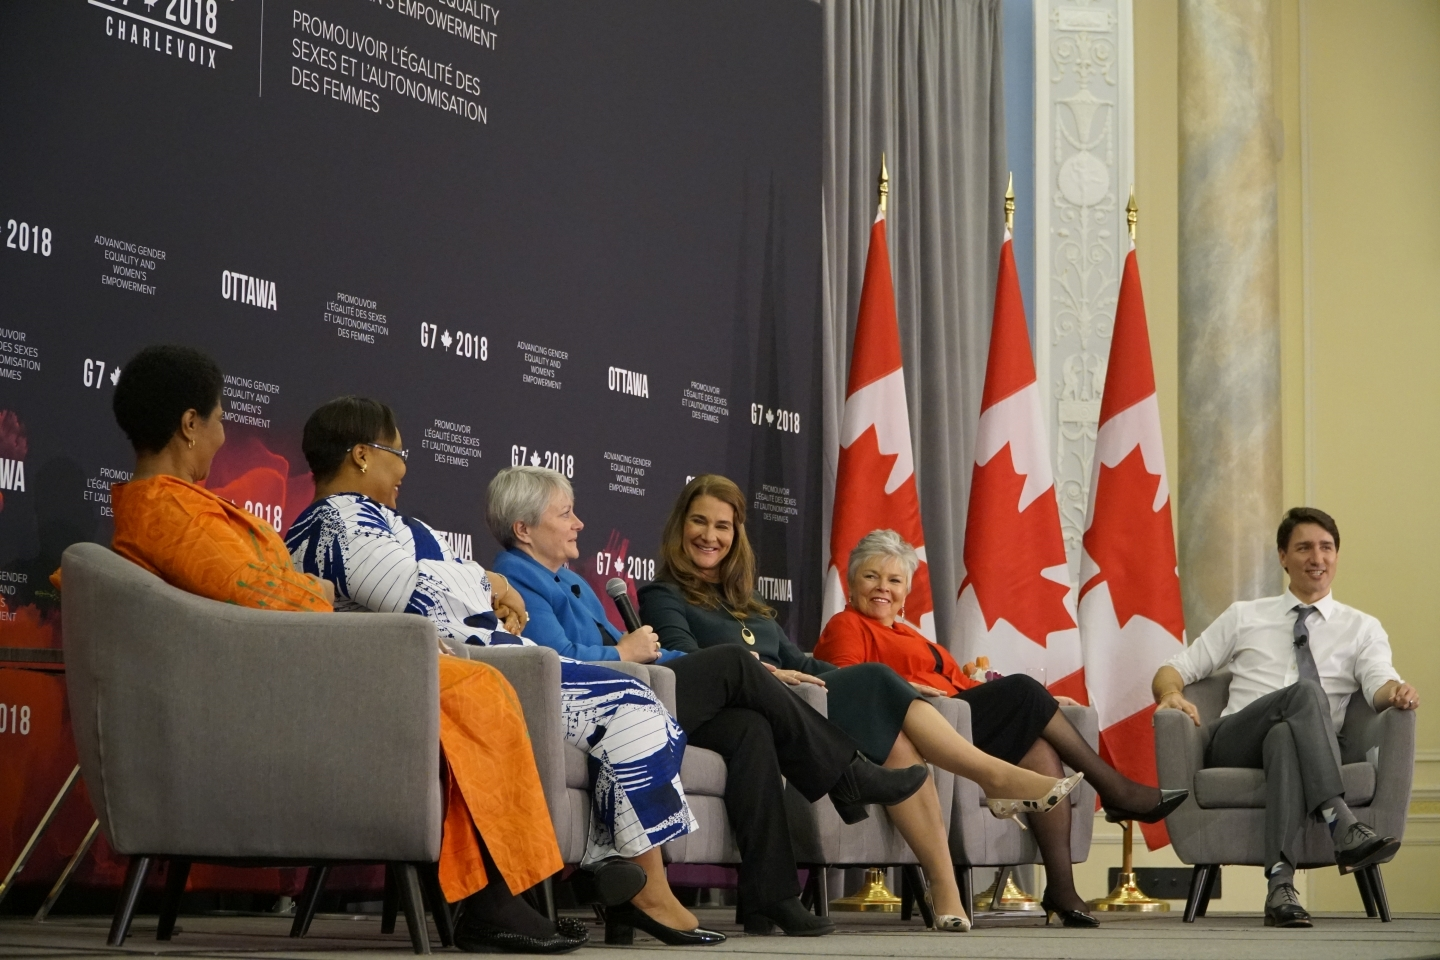 Members of the Gender Equality Advisory Council speak with Justin Trudeau on April 26 in Ottawa. (Global Affairs Canada)